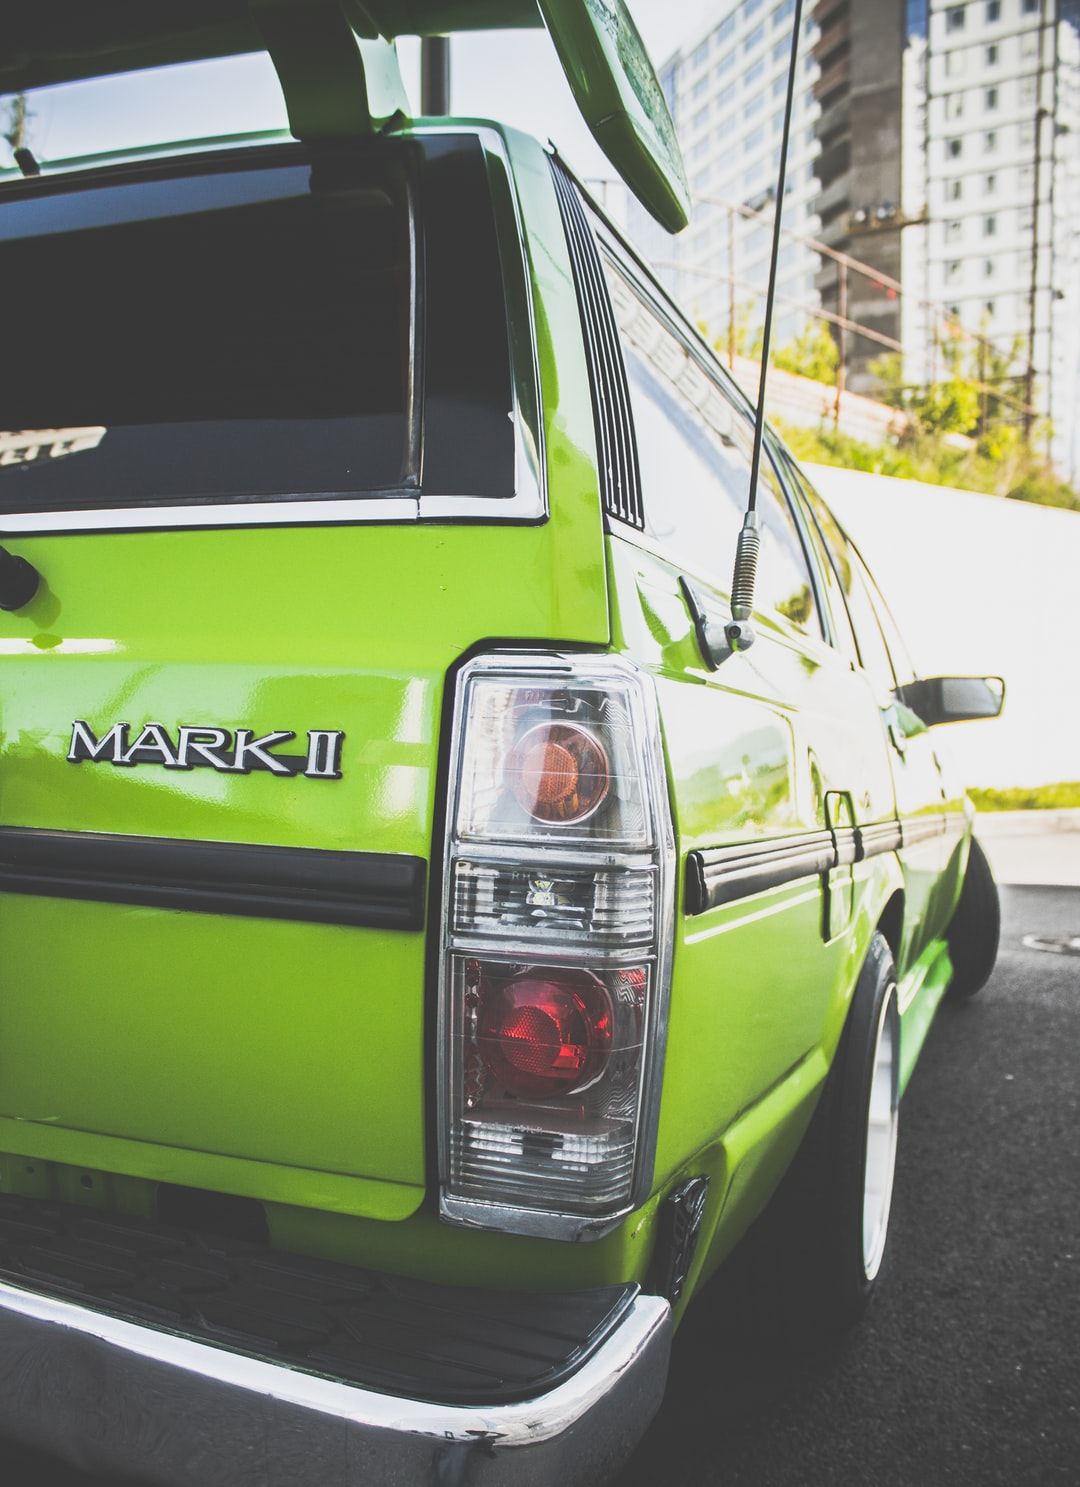 Green day with Toyota Mark II